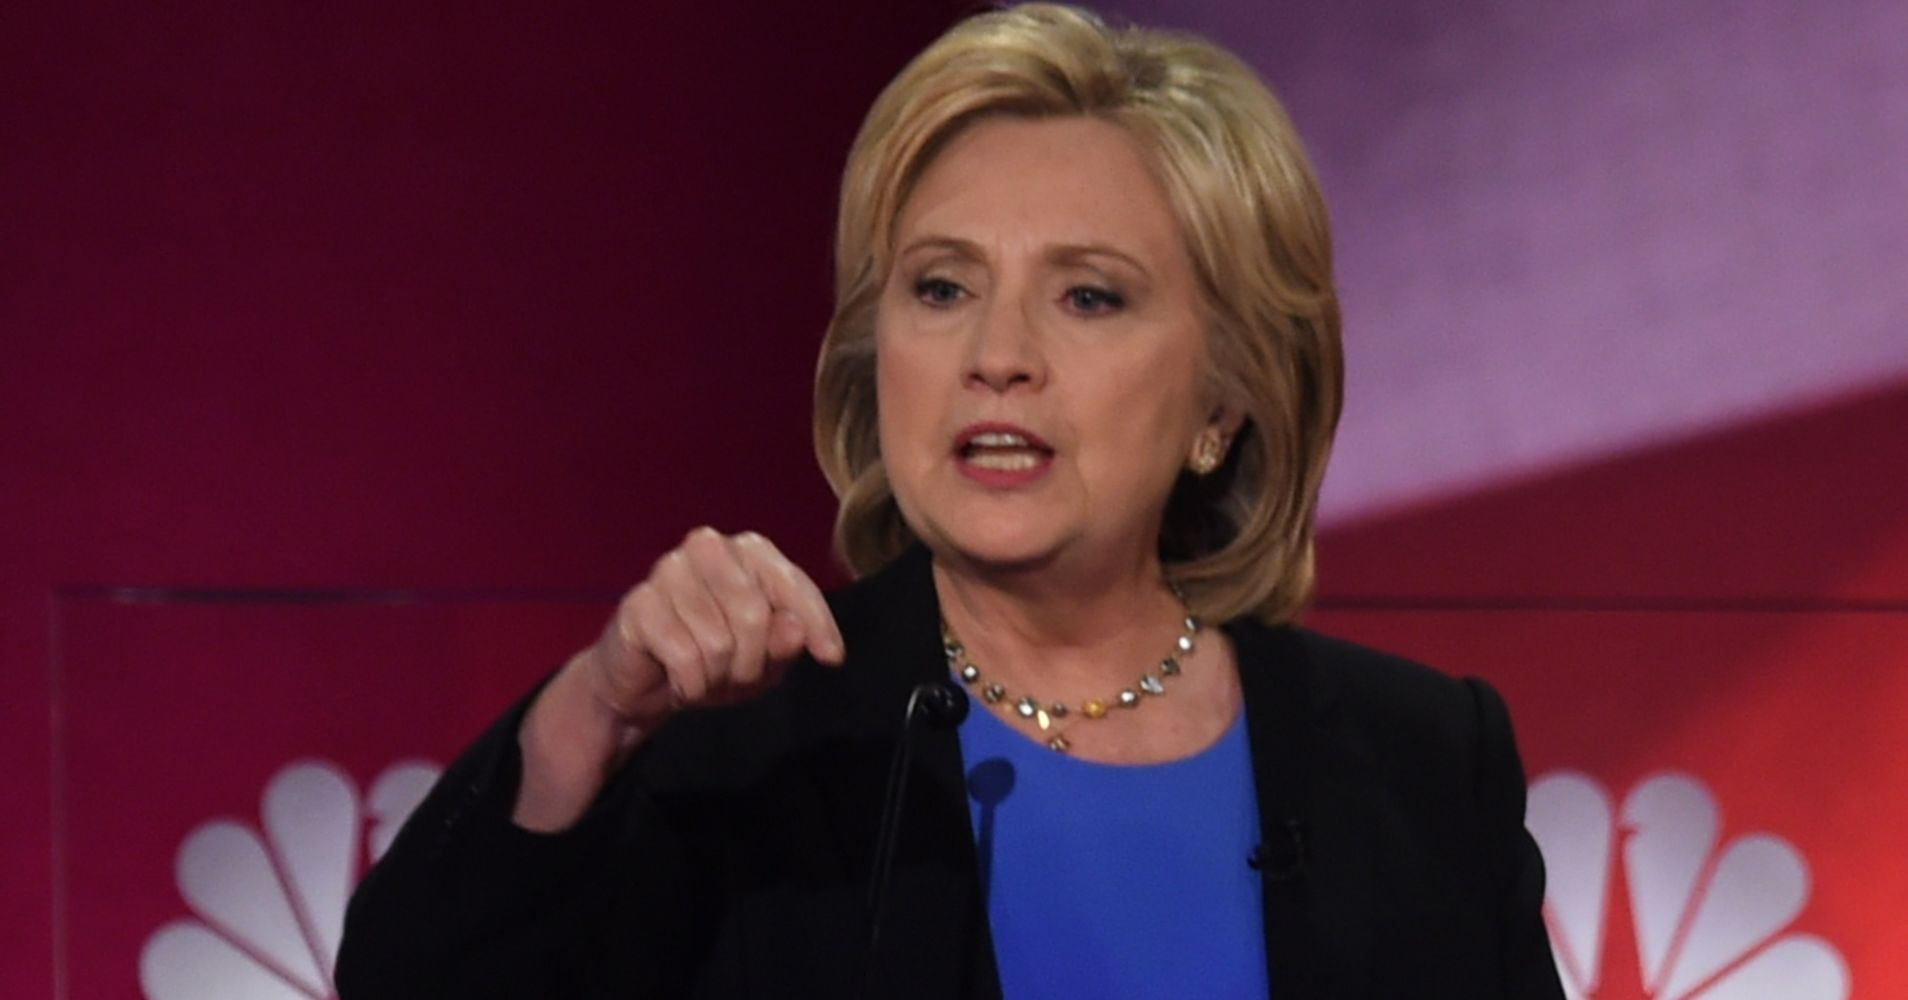 hillary clinton and the topic of abortion Misleading statements about abortion characterized hillary clinton's discussion of the topic during the third presidential debate.